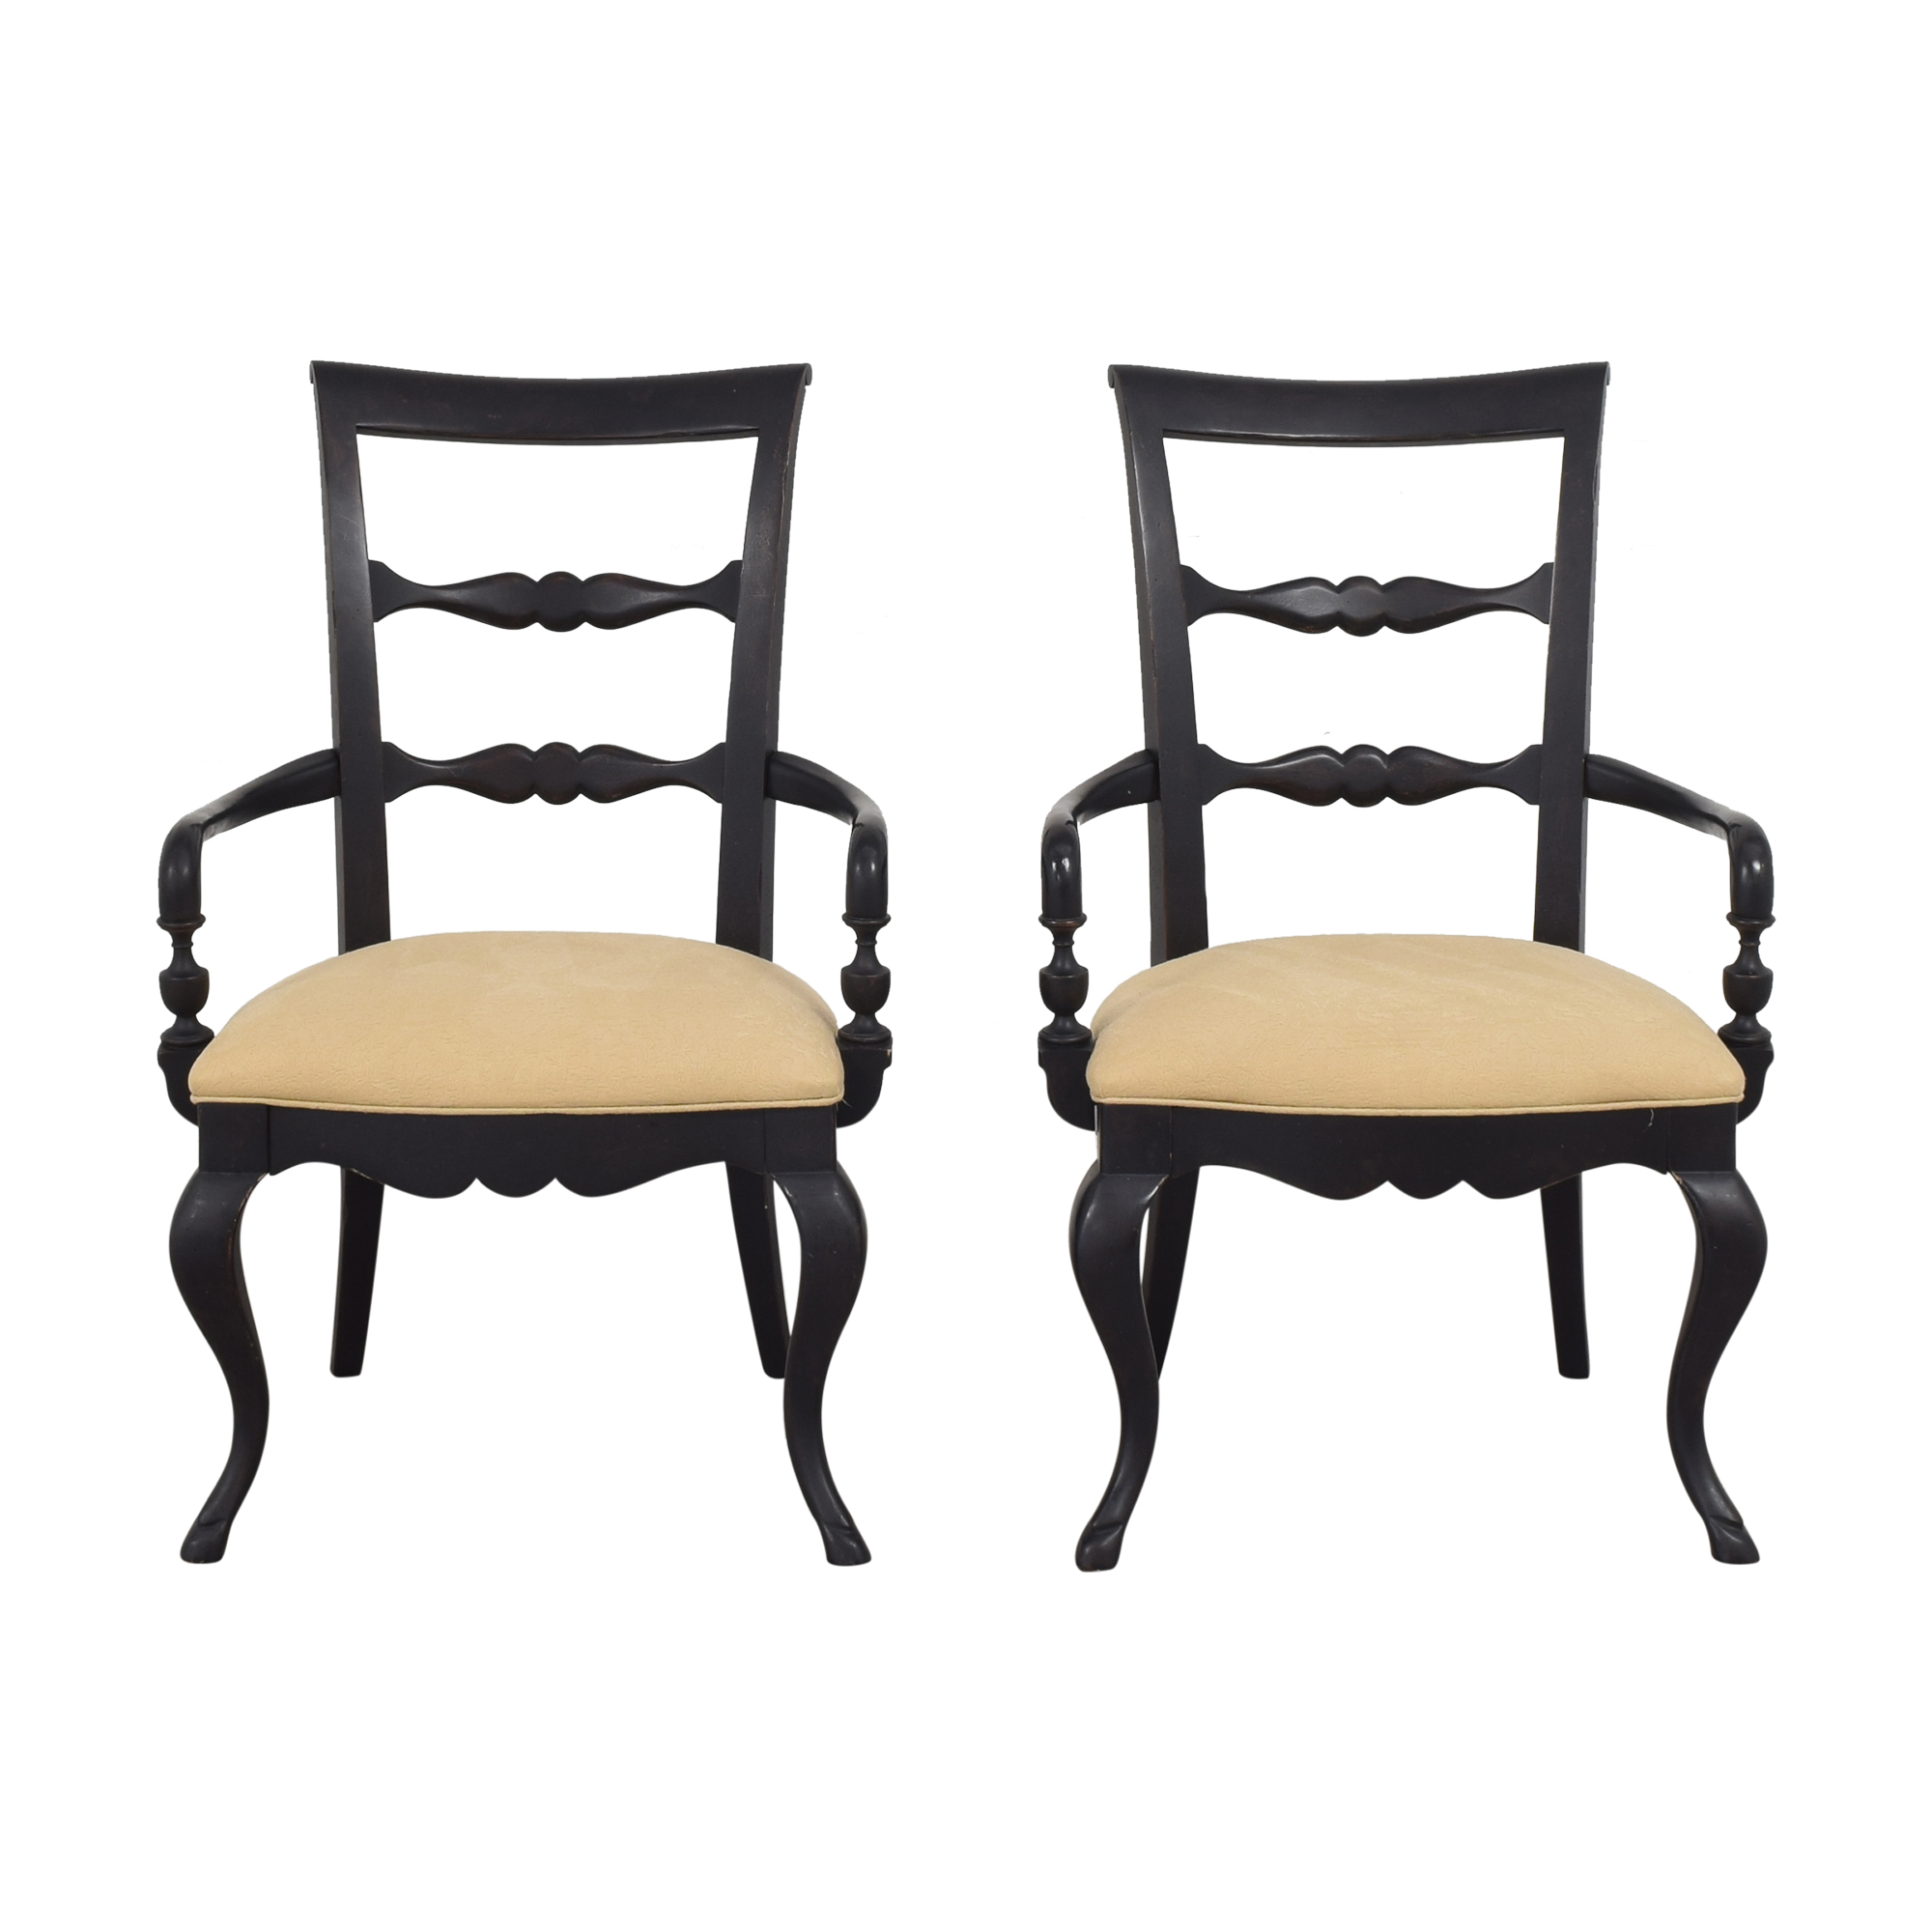 Thomasville Thomasville Vintage Chateau Dining Arm Chairs price